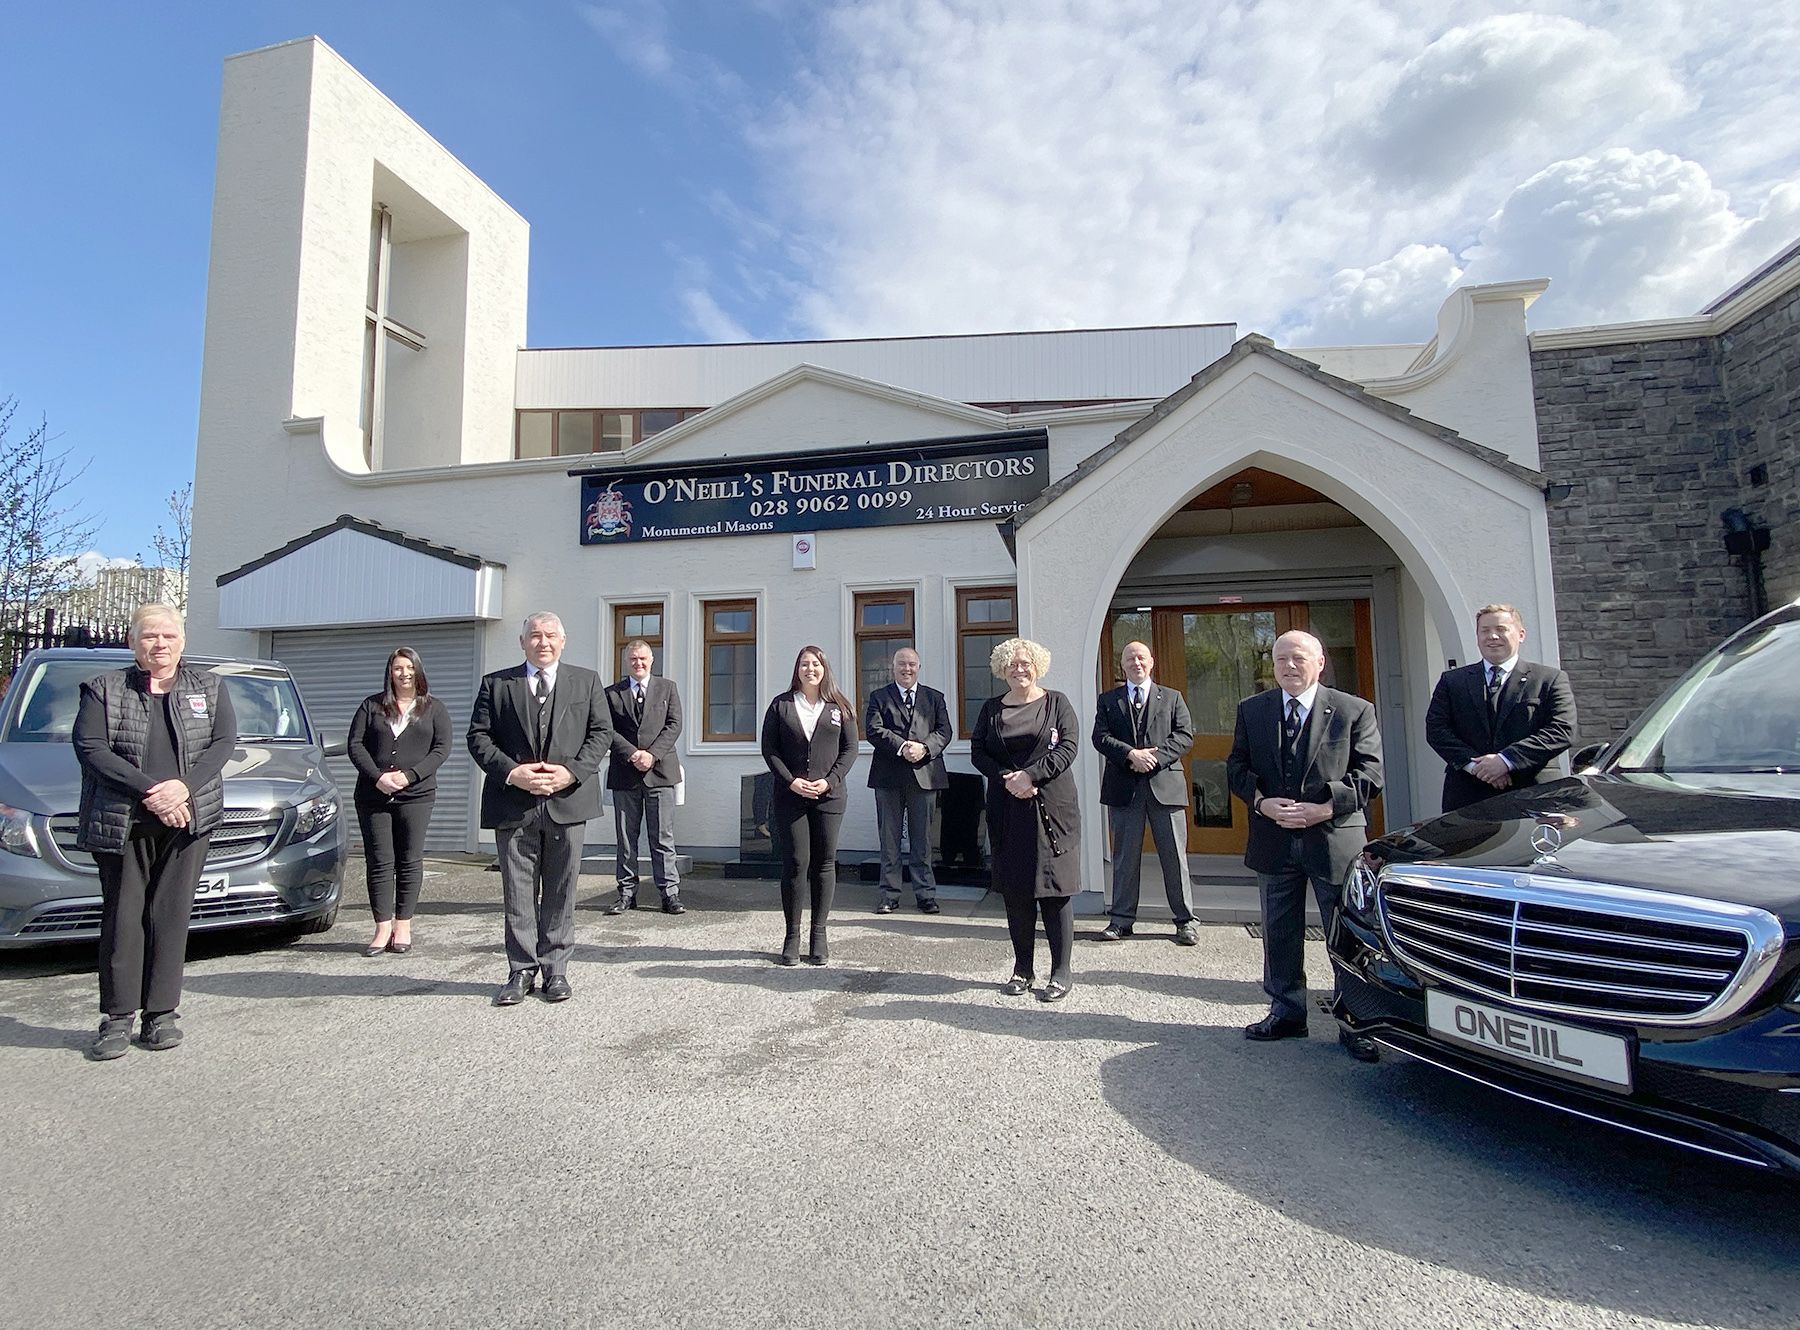 THIRTY YEARS SERVING THE COMMUNITY: The professional and highly trained team at O'Neill's Funeral Directors who are marking thirty years in the business and would like to thank the thousands of families who trusted them and gave them the honour of looking